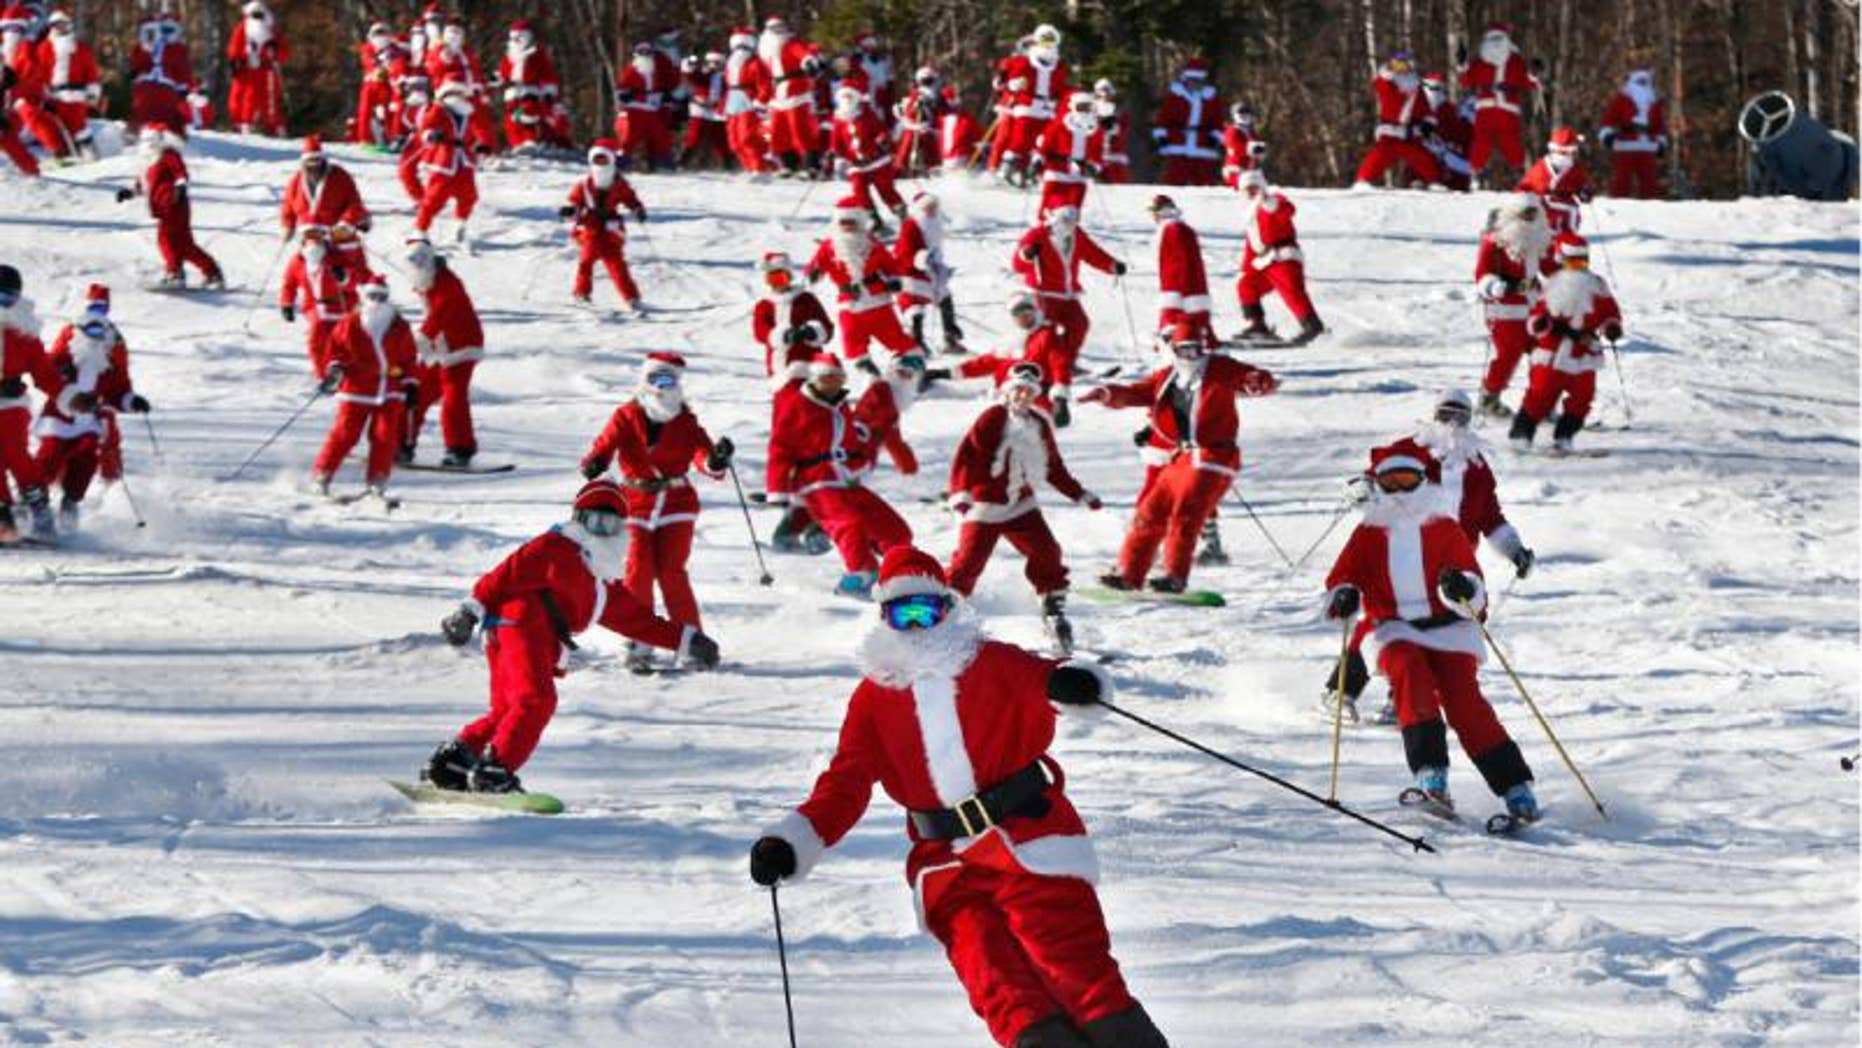 Skiers and snowboarders dressed as Santa take a run en masse at the Sunday River ski resort, Sunday, Dec. 6, 2015, in Newry, Maine. The annual Santa Sunday fundraising event raised $3,014 for the Sunday River Community Fund